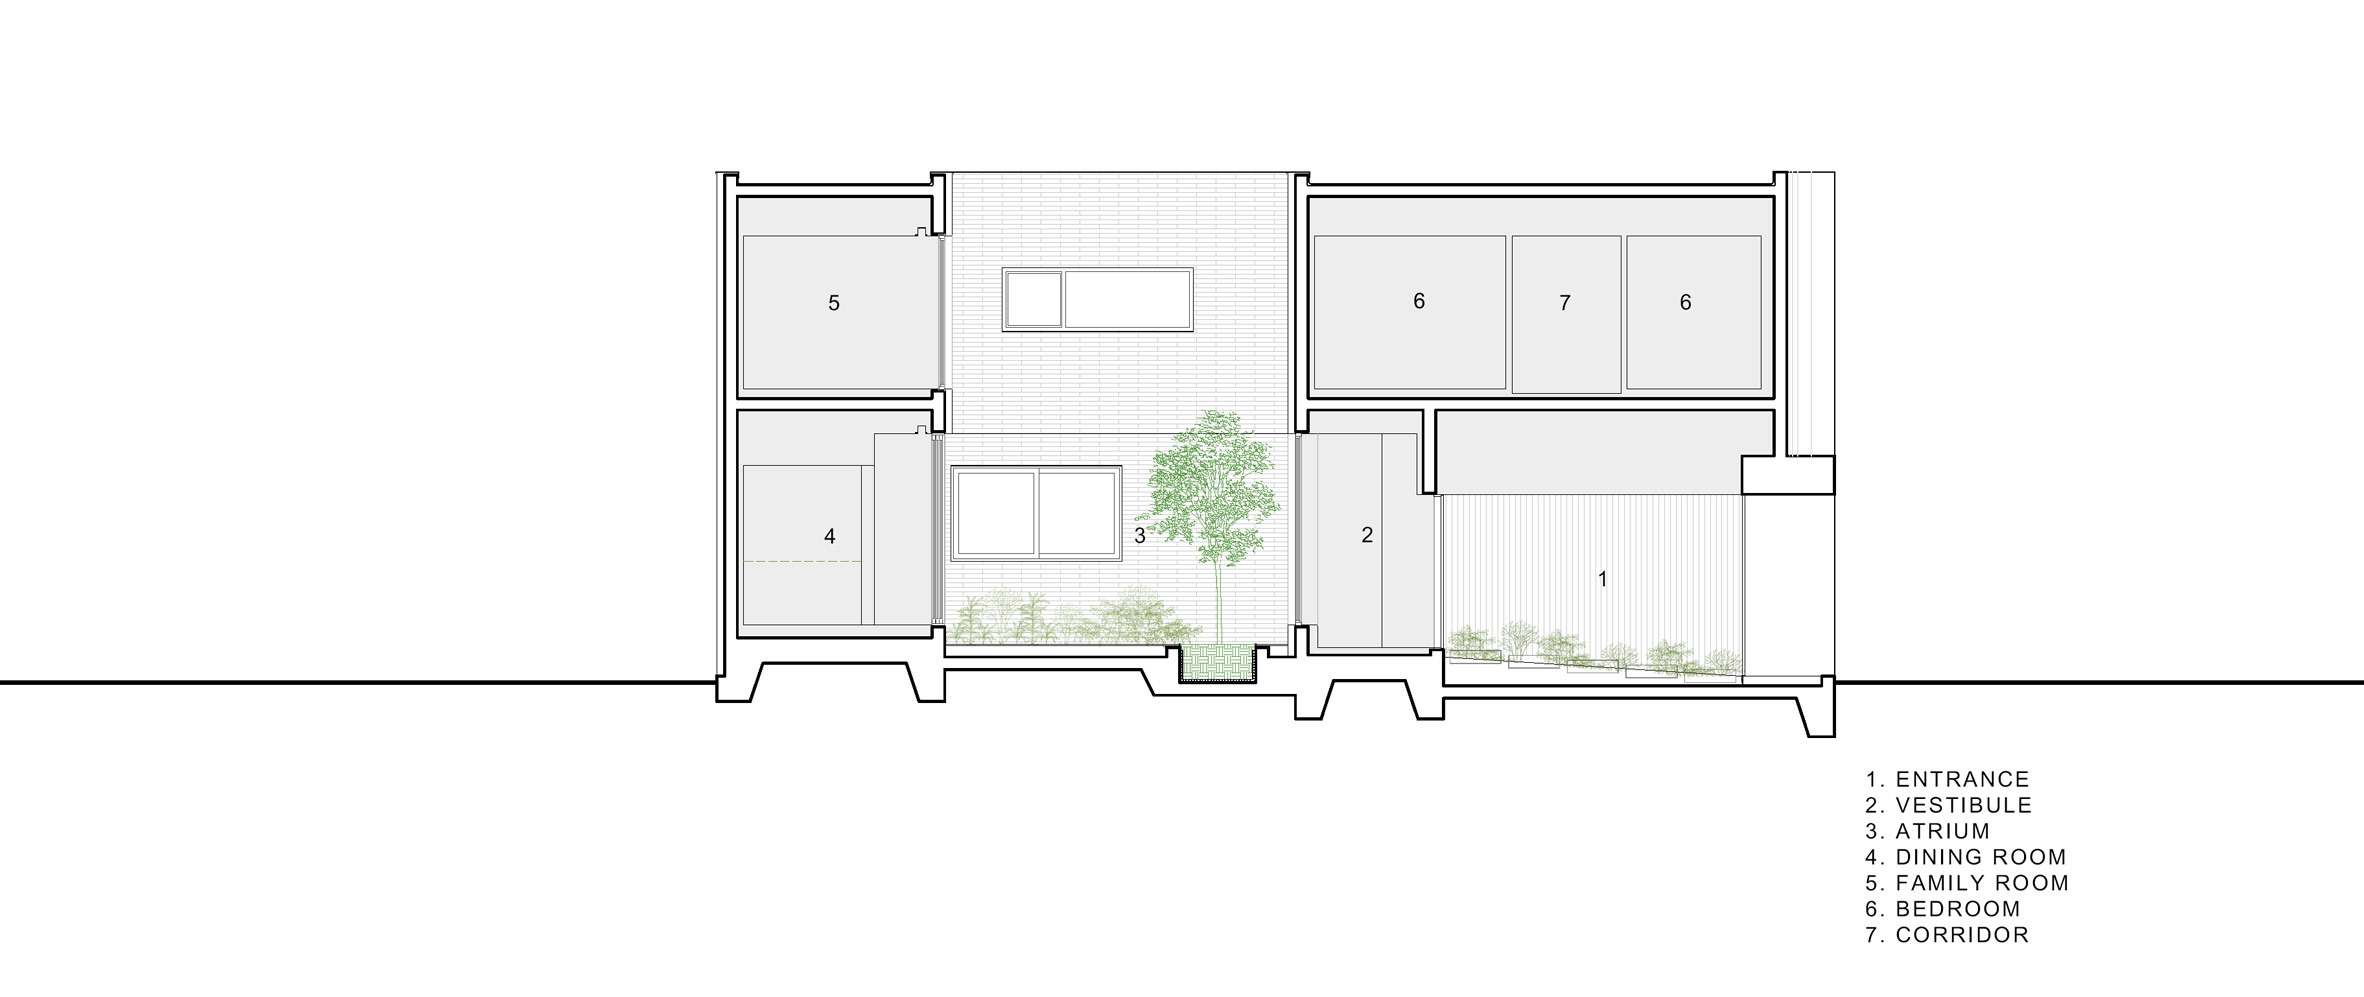 steel-grove-augmented-reality-architecture-residential-south-korea-courtyards-steel_dezeen_section-1.jpg